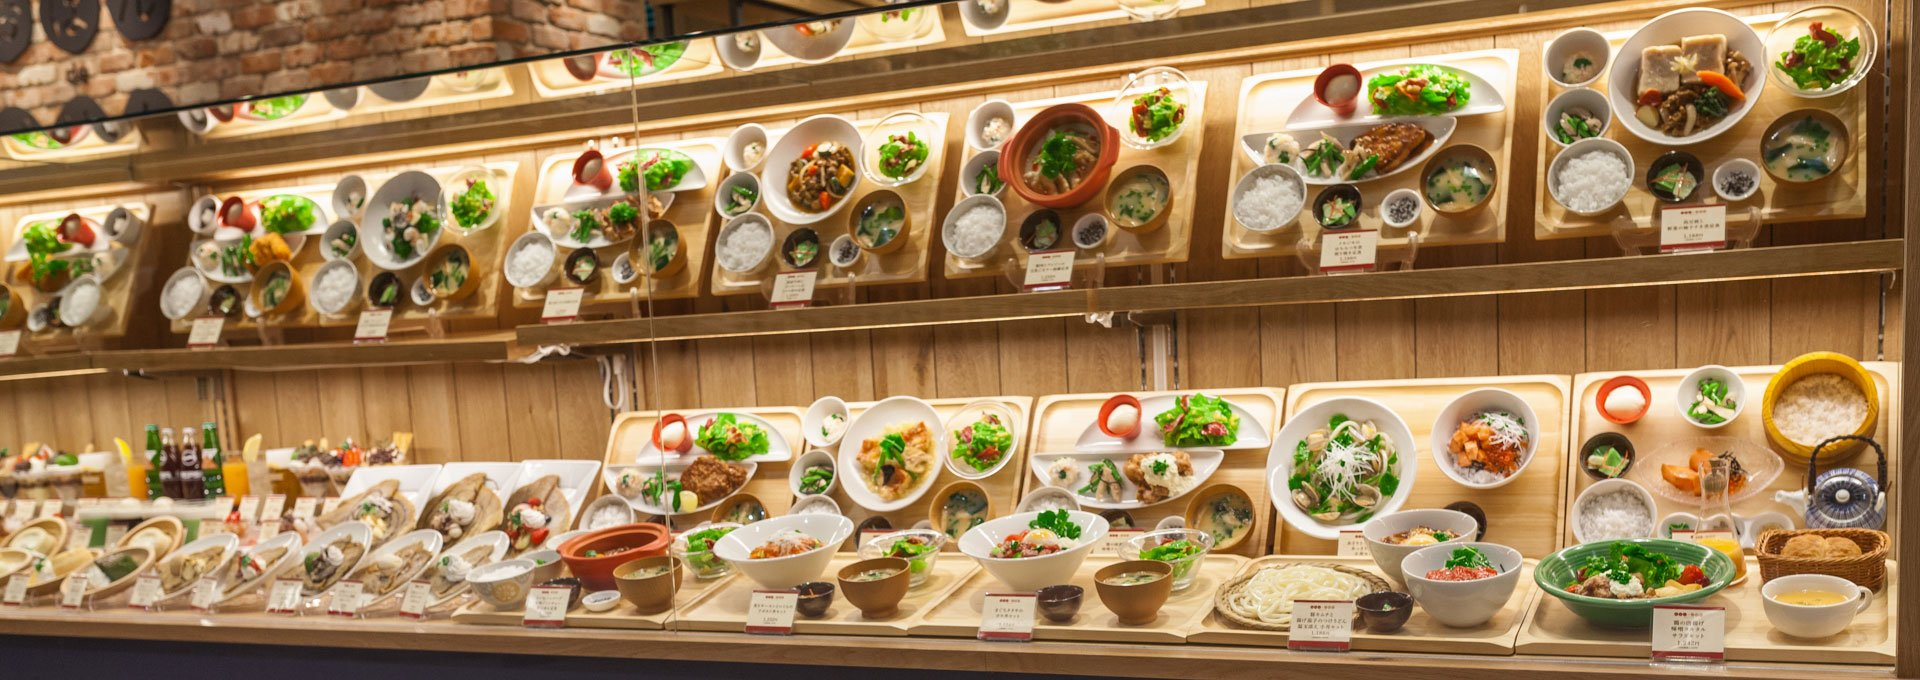 A restaurant displays tons of bowls and plates of plastic food to showcase their menu